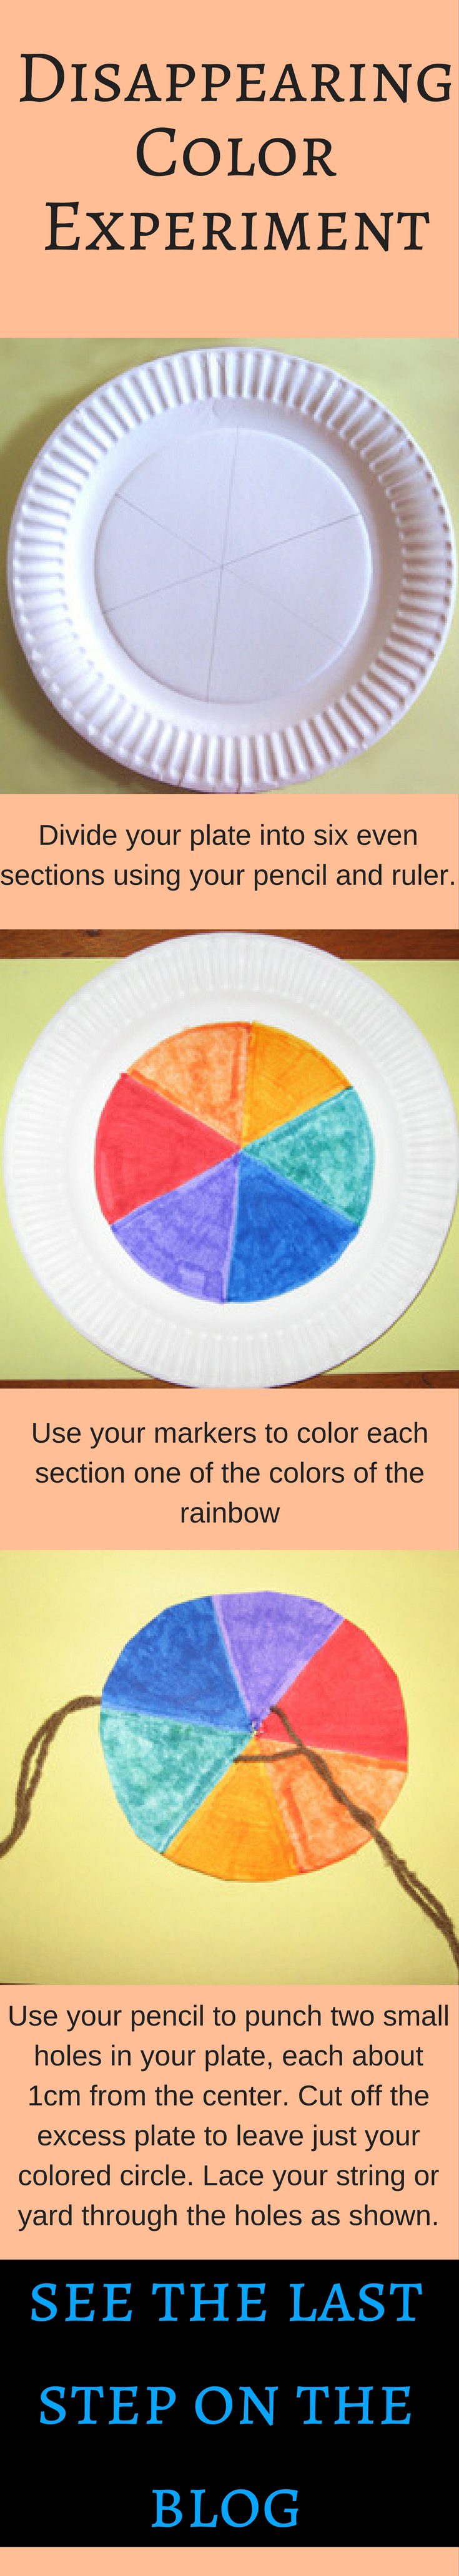 This color experiment for kids will engage your child's young mind and build his visual skills. It will encourage experimentation & allow for lots of fun!